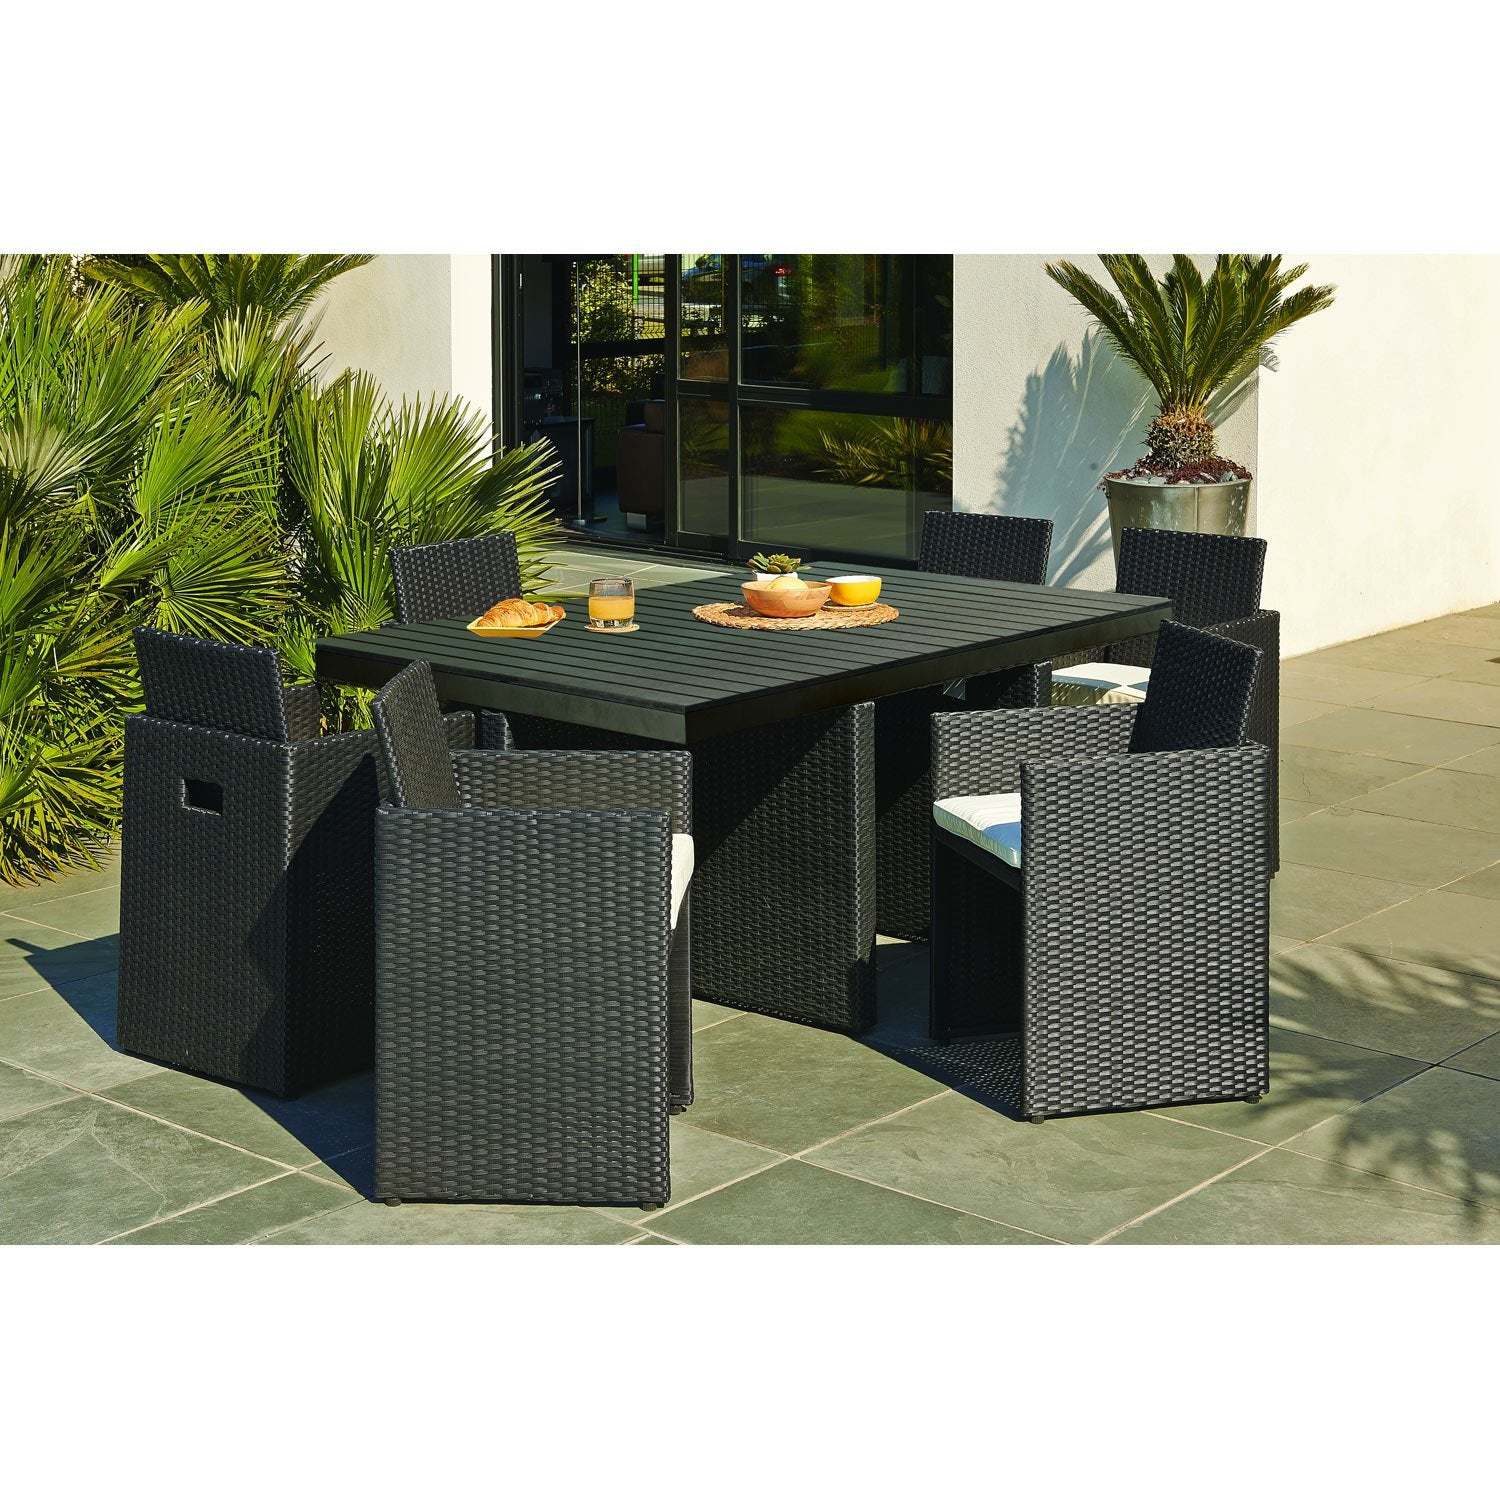 Salon De Jardin Encastrable R Sine Tress E Noir 1 Table 6 Fauteuils Leroy Merlin